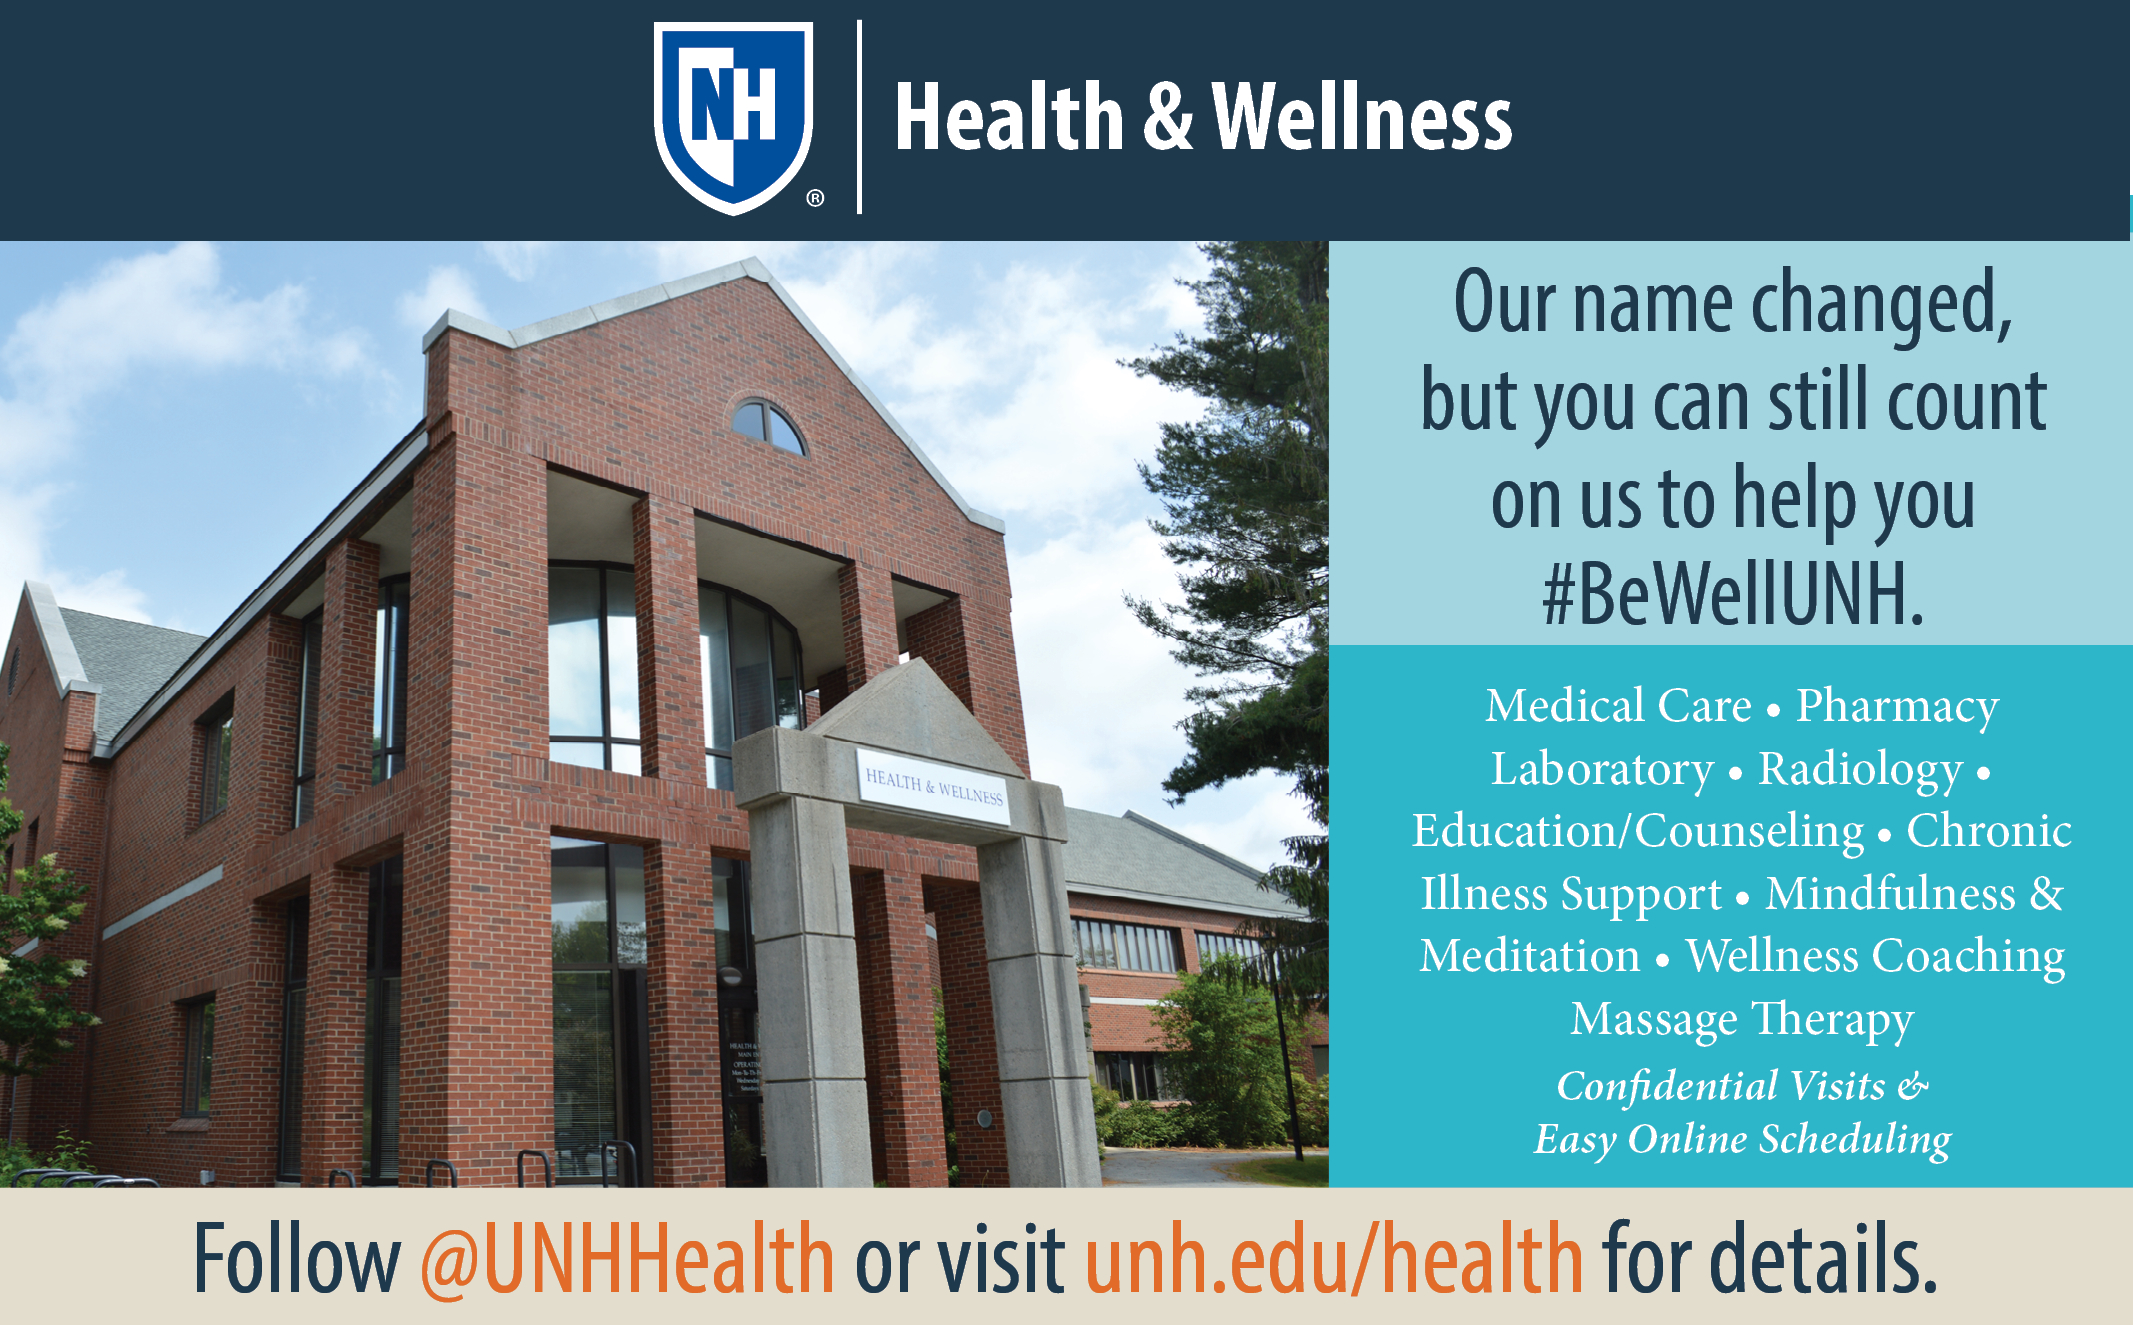 Information regarding New Name: Health & Wellness is as follows Create Your Own Tag: is #BeWellUNH and Start date is August 18 2017 and End Date is September 08 2017 and File is Browse and Affiliation is Department and Group Name is Health & Wellness and File Name is Name-Change_TV_HRC_landscape_comp.jpg and Name is Jen Pribble and Email is jennifer.pribble@unh.edu and Panel is Main and Name of Ad/Event is New Name: Health & Wellness and